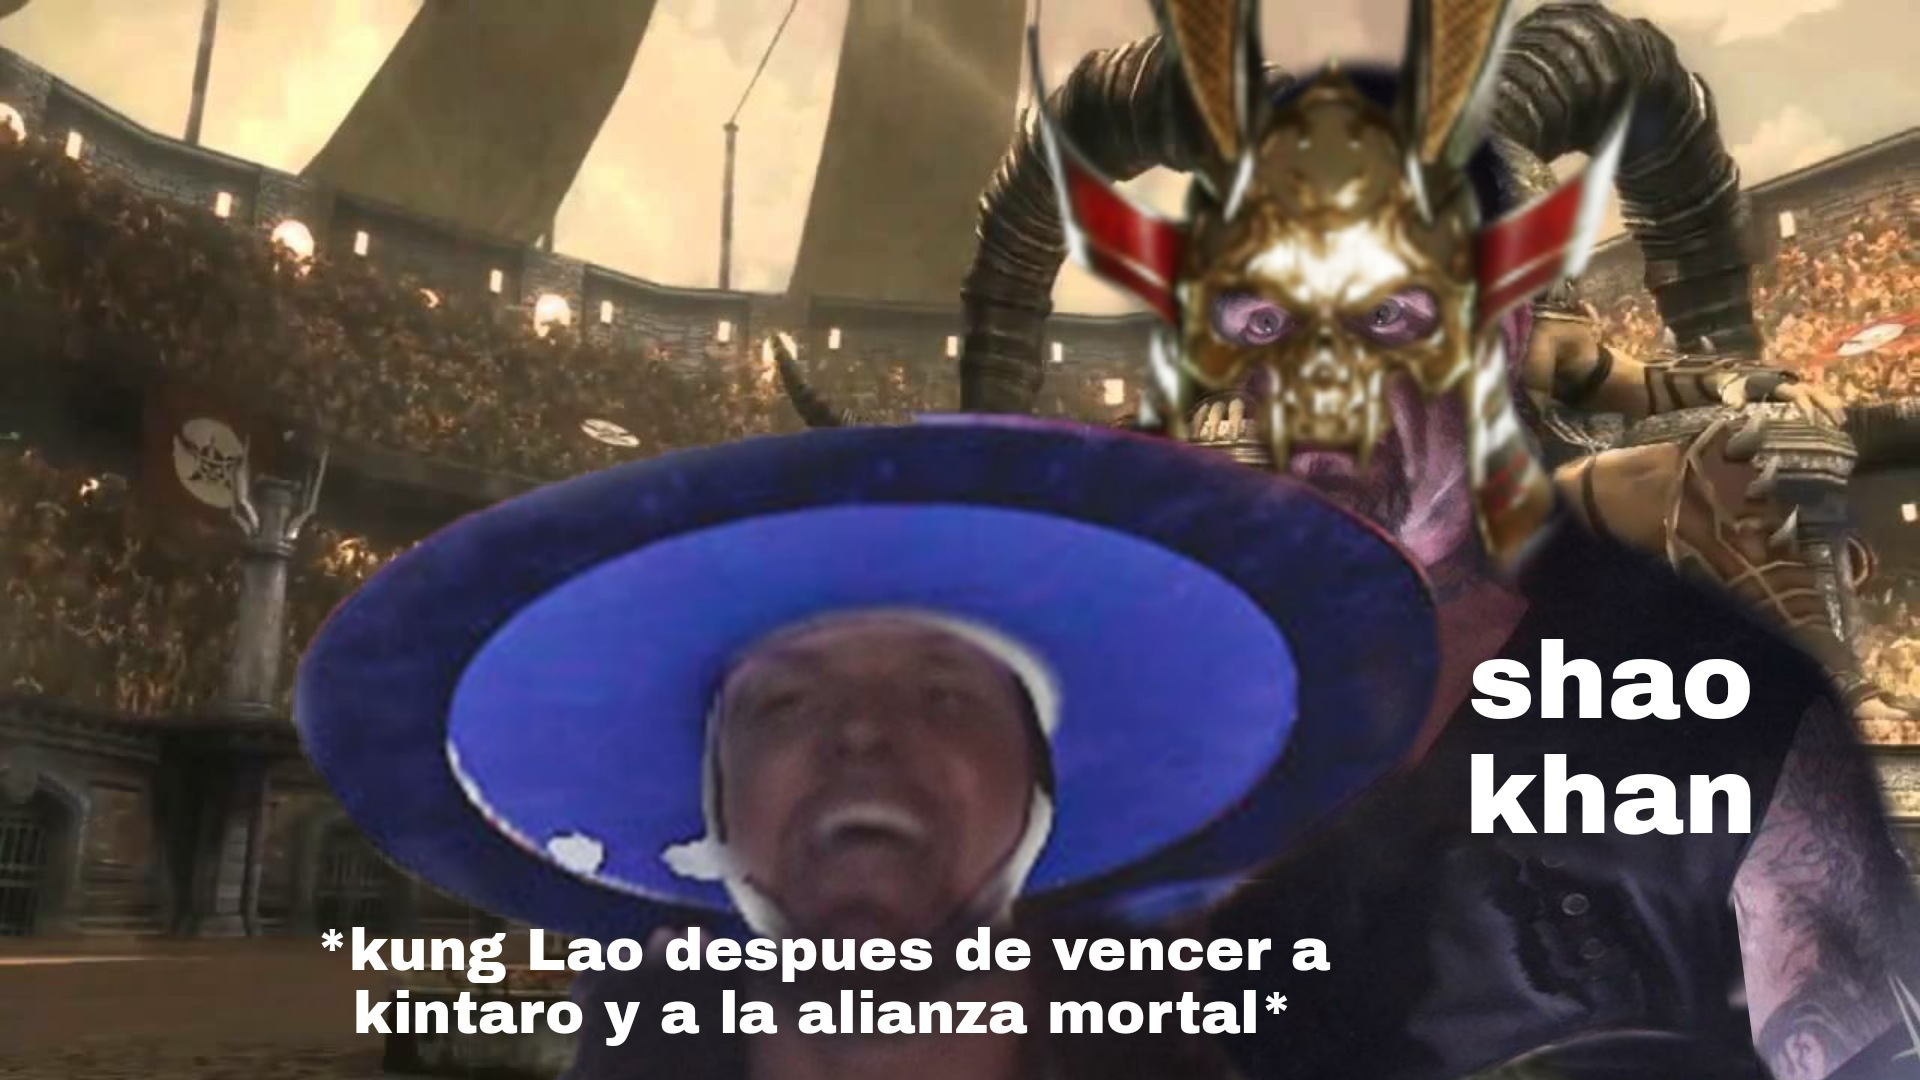 Edición is my pasion - meme